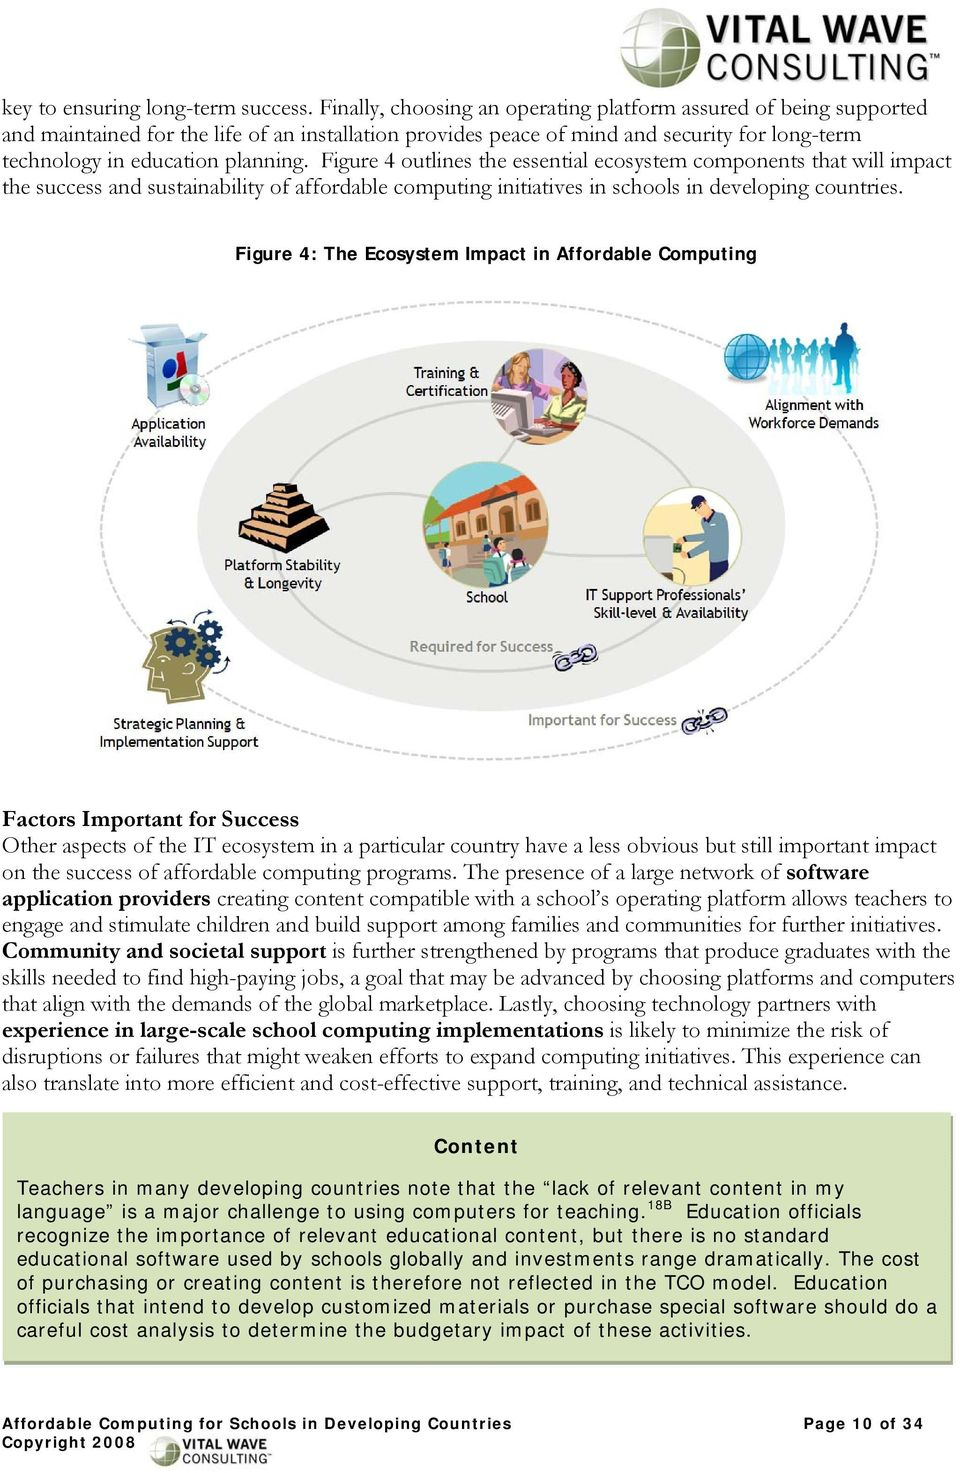 Figure 4 outlines the essential ecosystem components that will impact the success and sustainability of affordable computing initiatives in schools in developing countries.